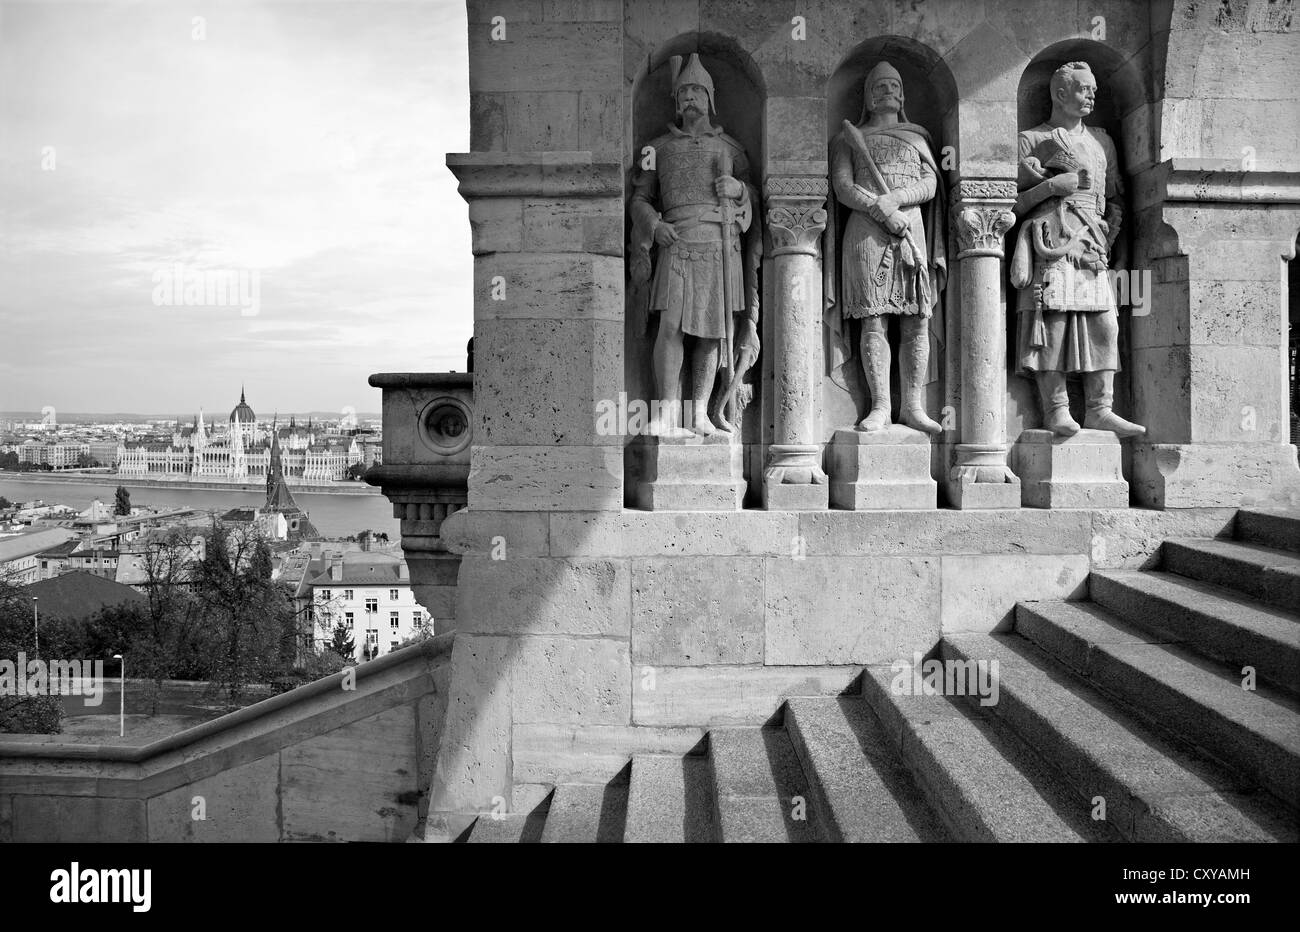 Budapest - guardians statue from Buda walls - Stock Image